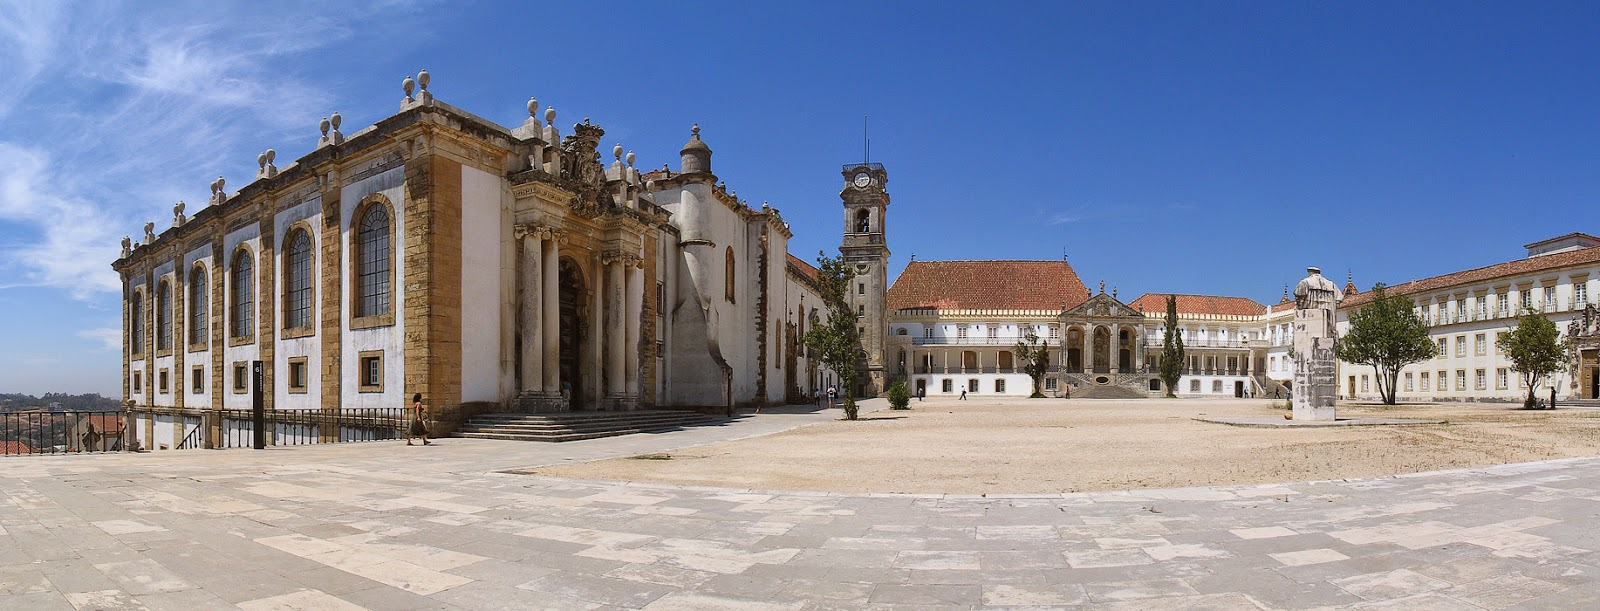 8 choses étranges de Coimbra